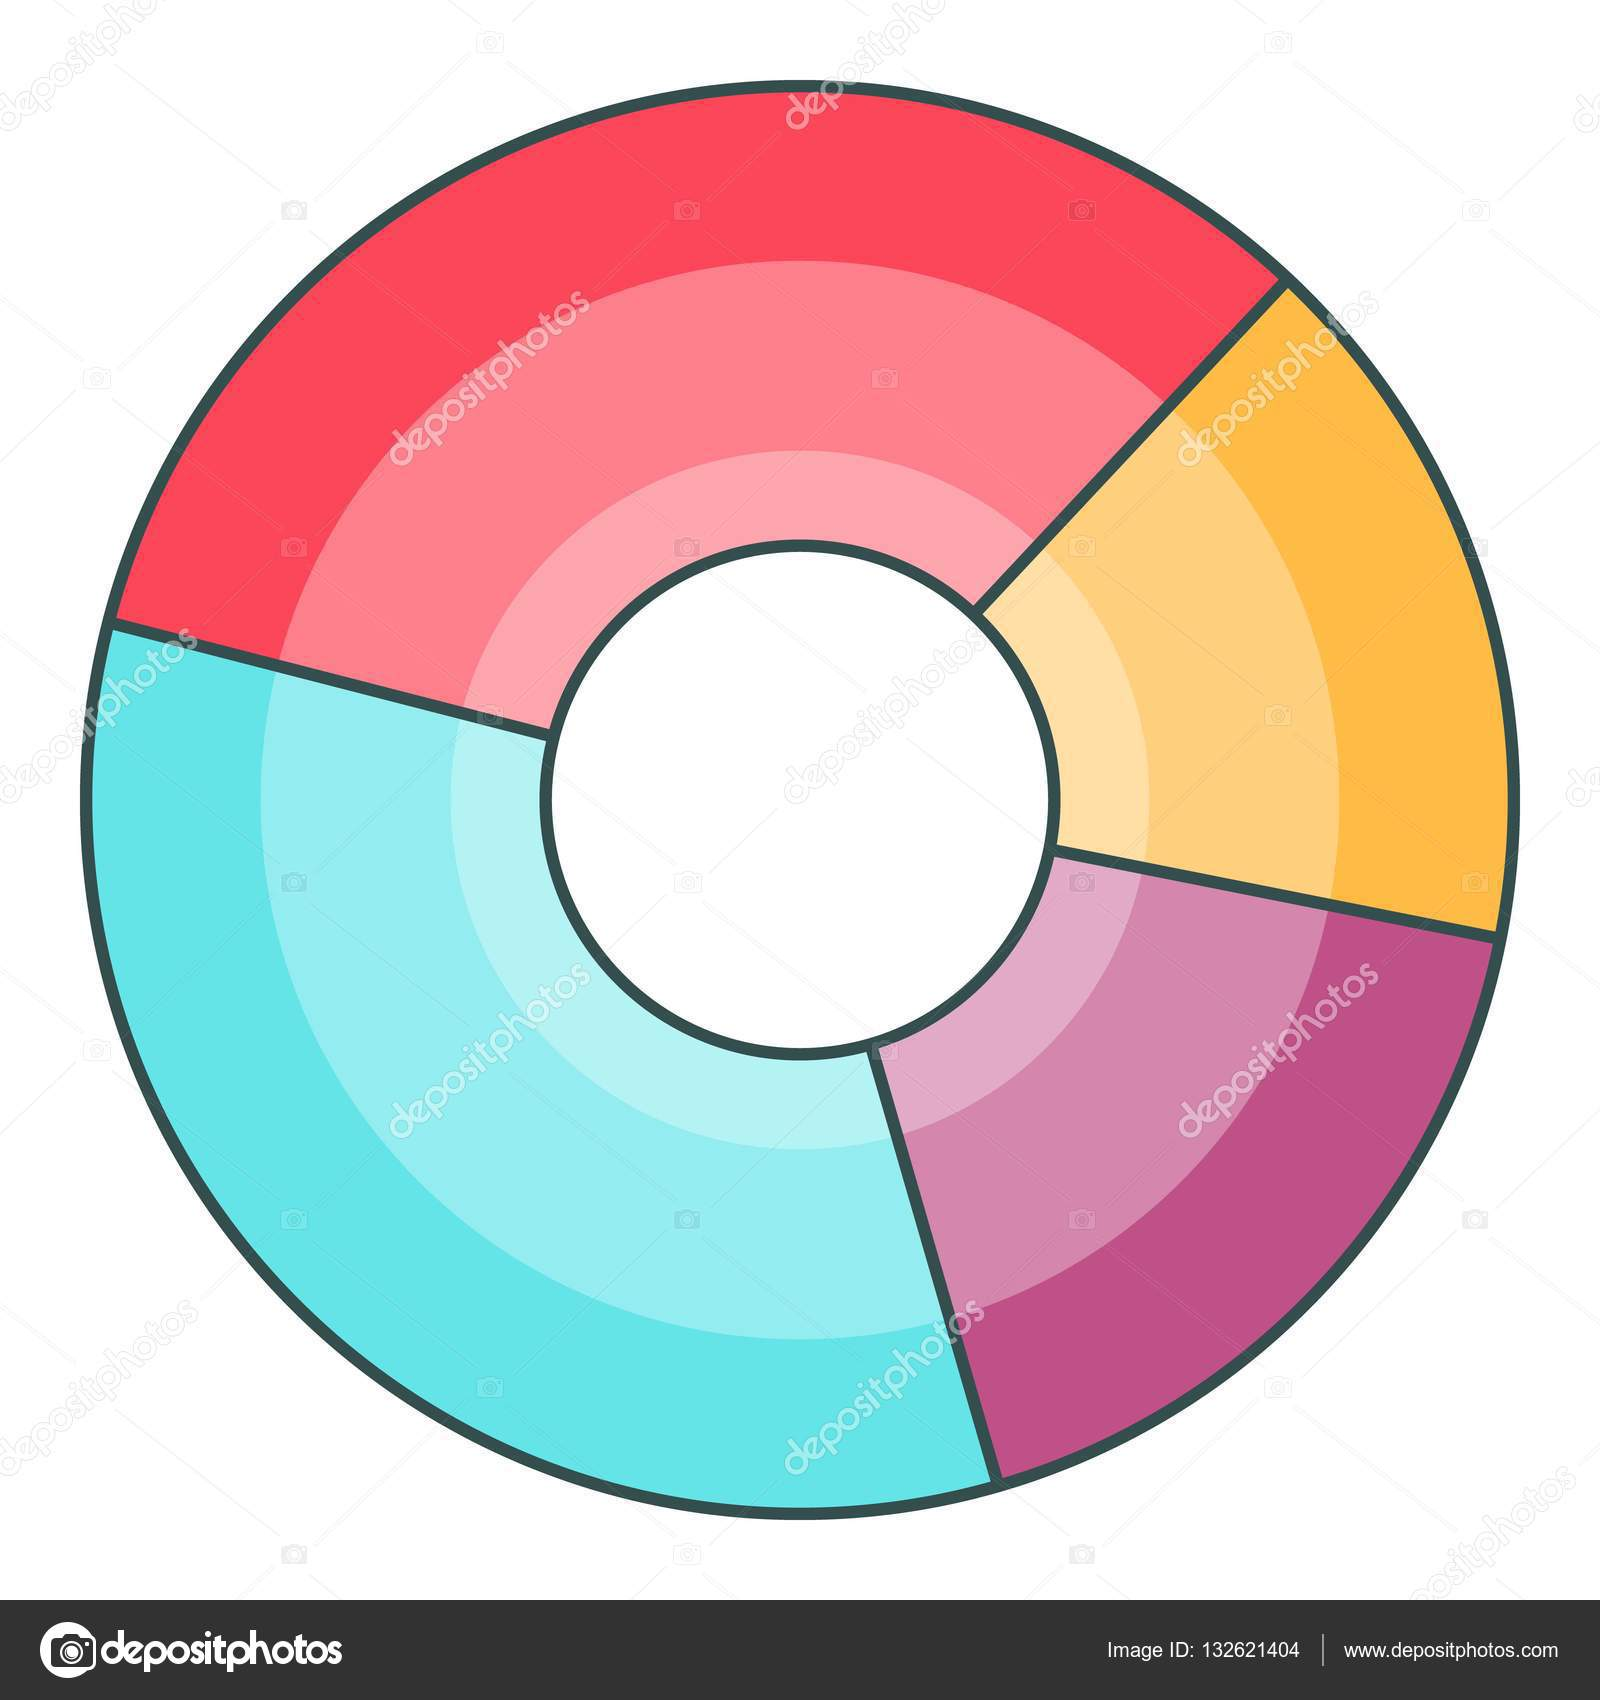 Pie chart icon cartoon style stock vector ylivdesign 132621404 pie chart icon cartoon style stock vector nvjuhfo Choice Image